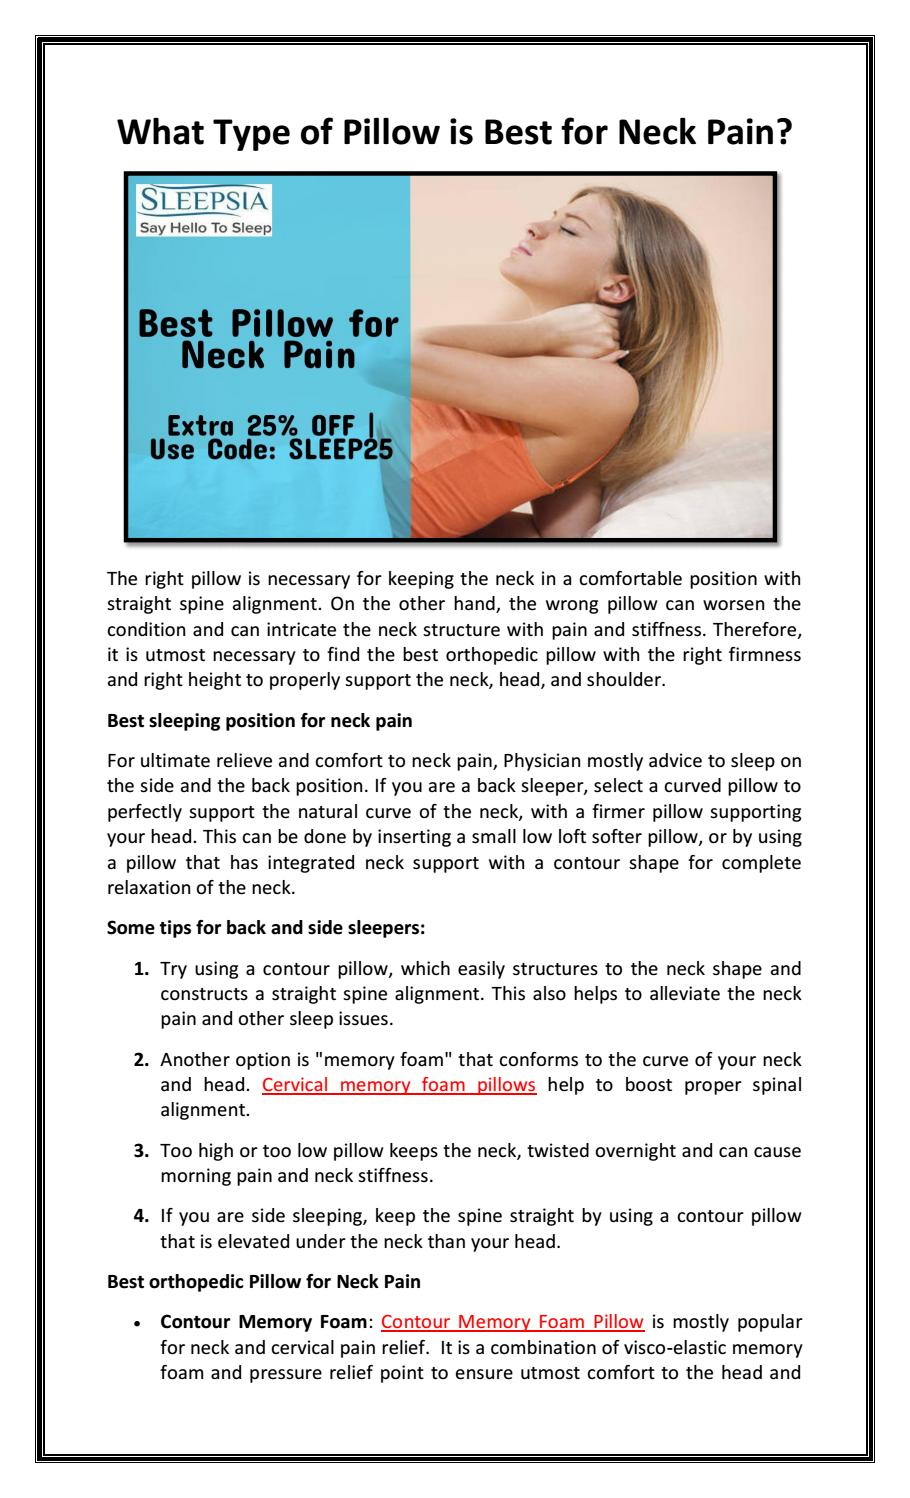 What Type of Pillow is Best for Neck Pain? by Sleepsia India